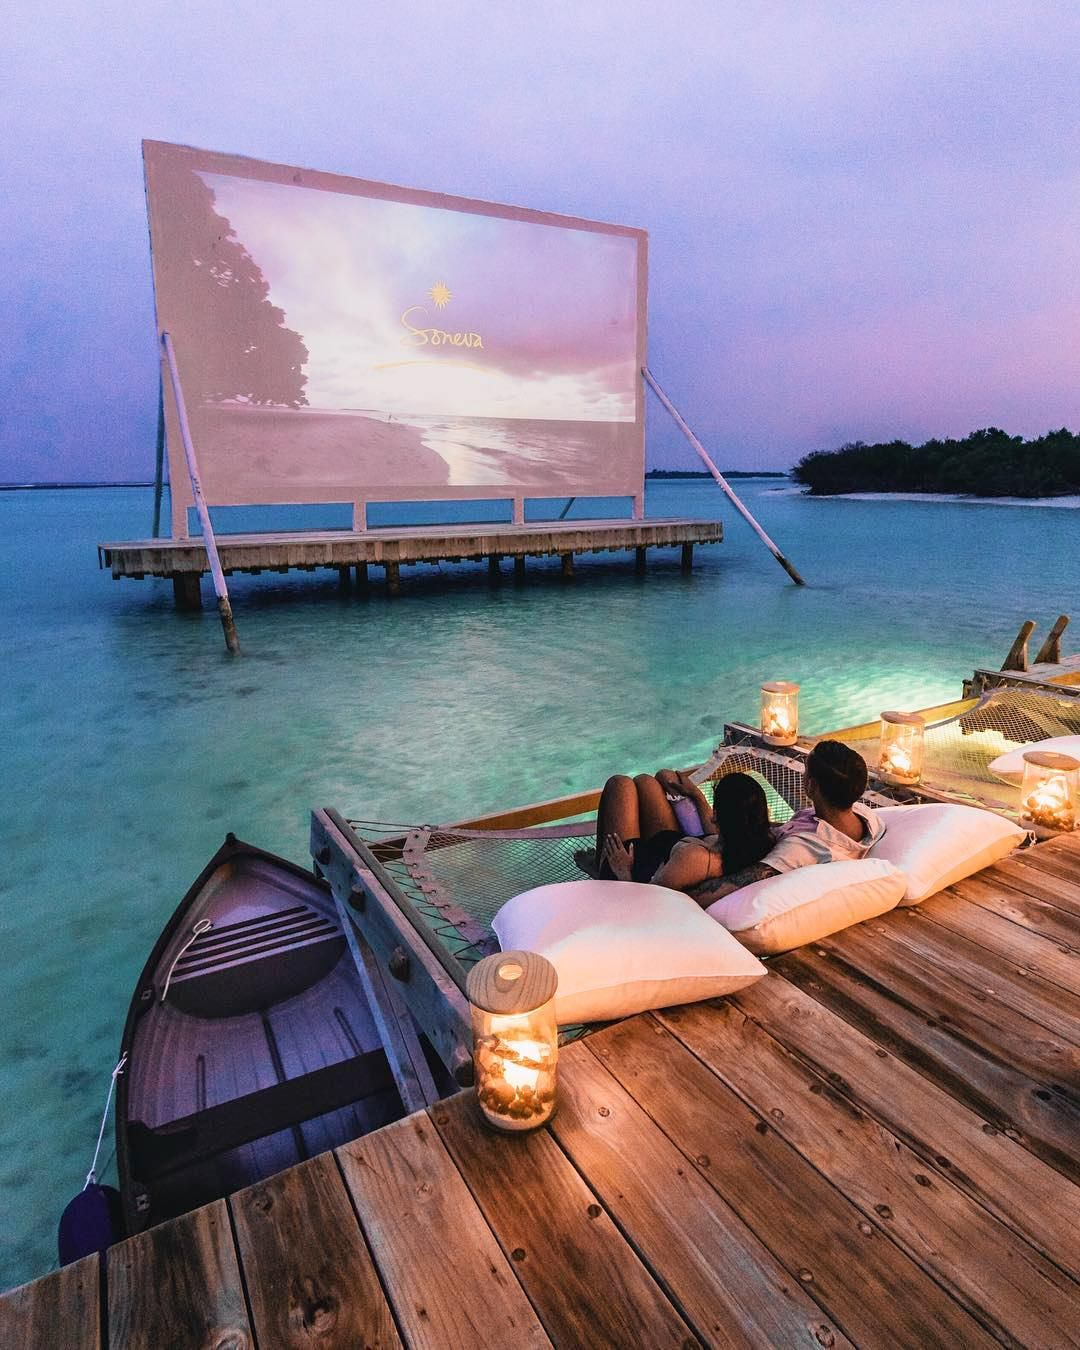 26 Outdoor Cinemas to Turn Your Movie Night Into an Adventure